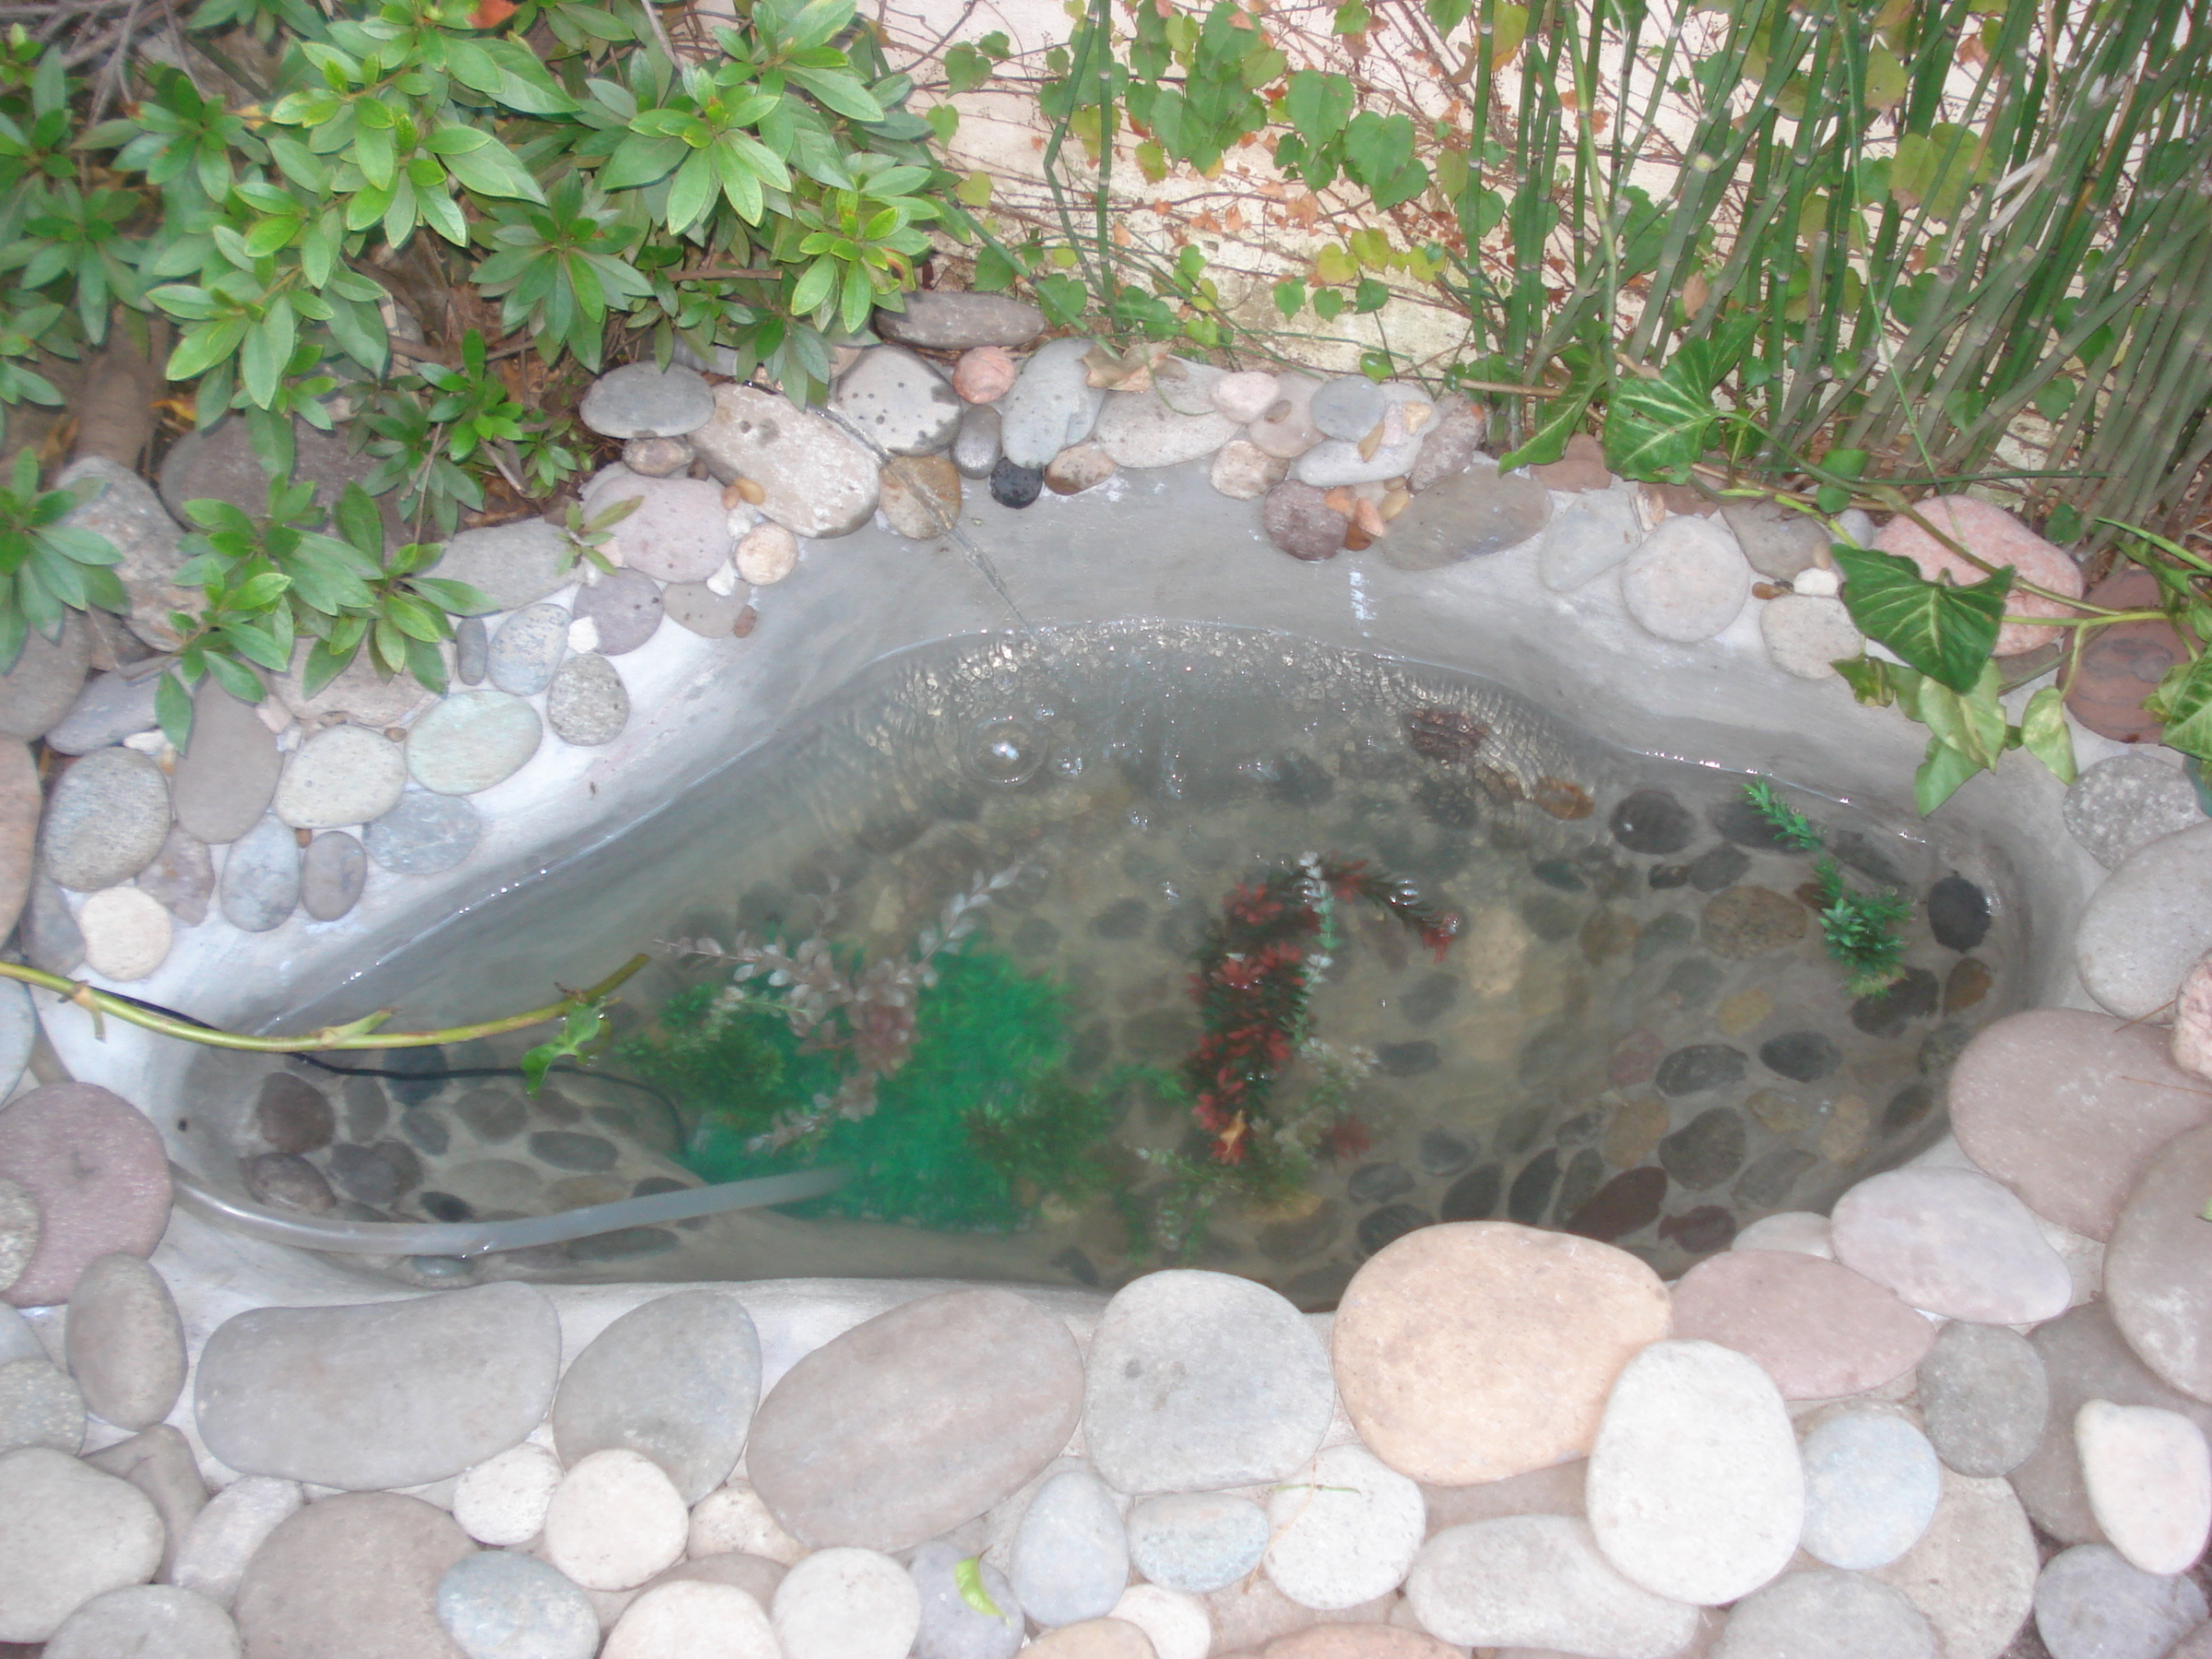 Piscinas para peces como hacer un estanque de jardin for Estanques para peces